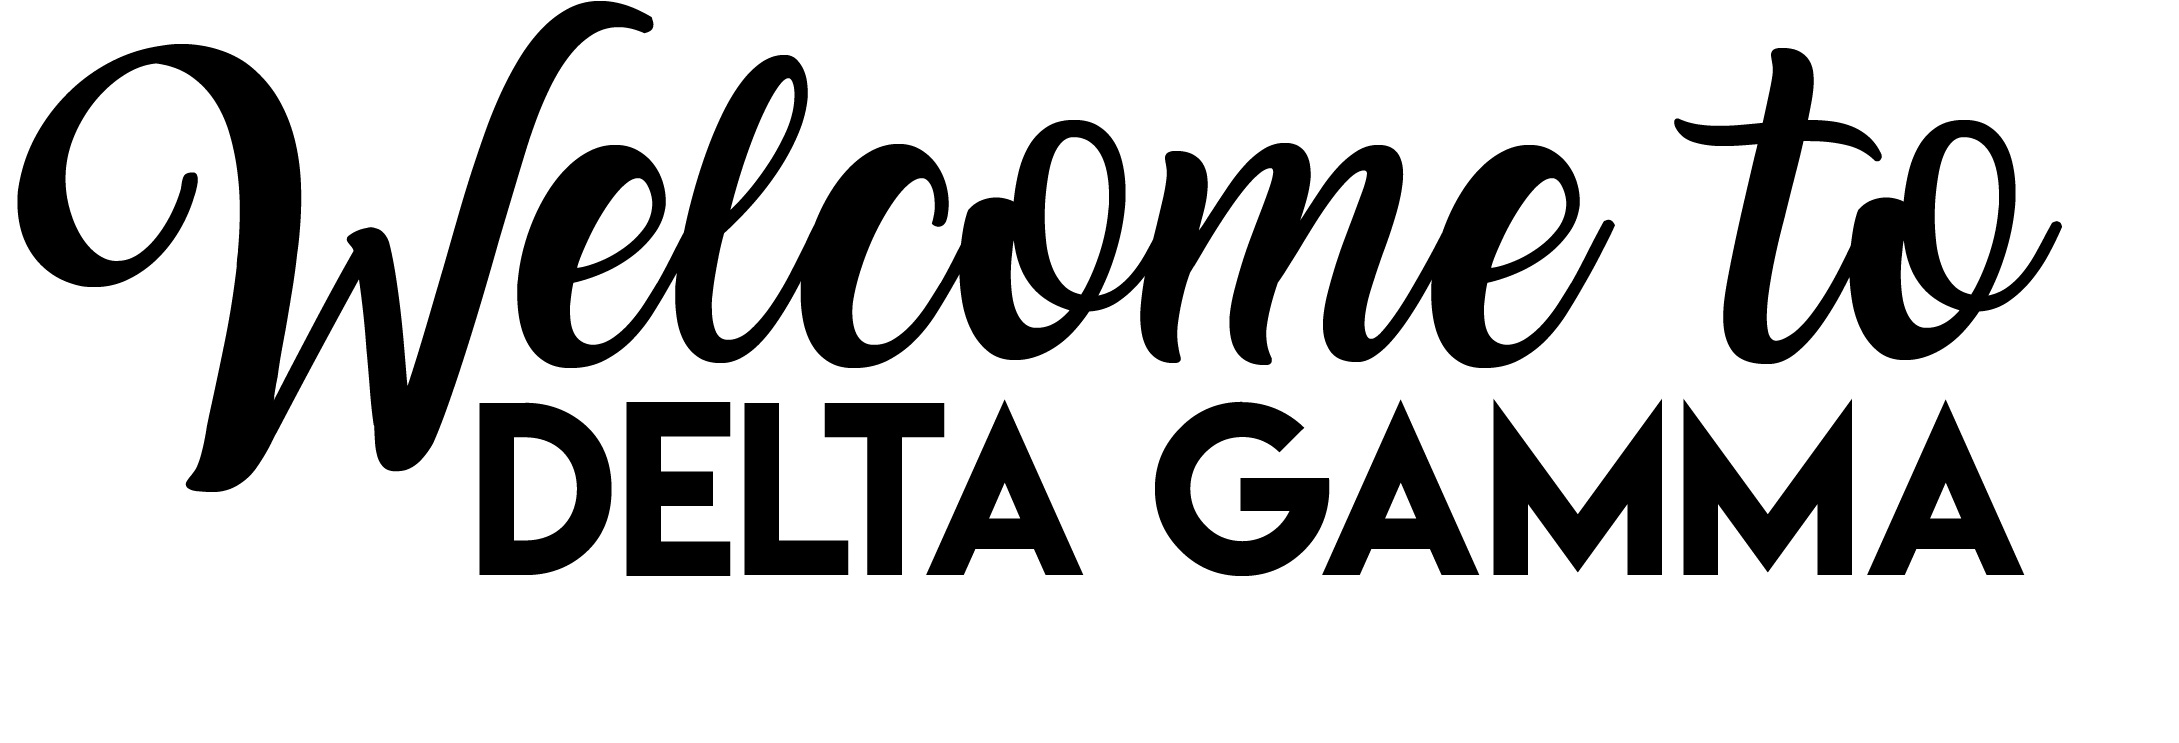 Home delta gamma at university of iowa feel free to look around and see what being a delta gamma is all about buycottarizona Gallery